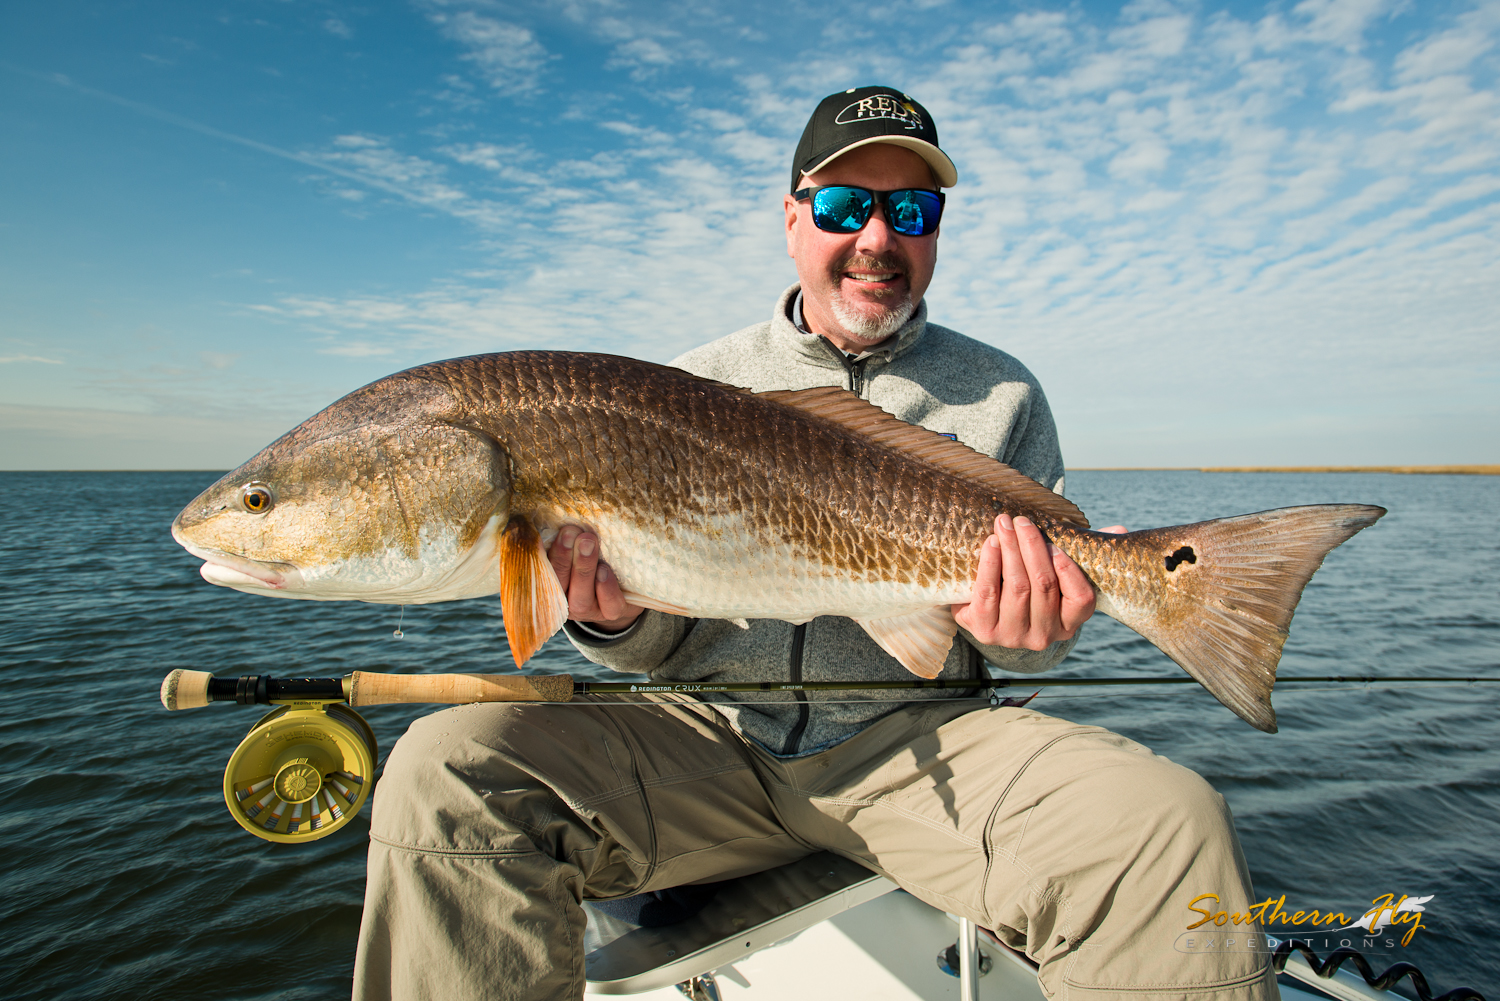 Spin Fishing Vacation In the Marsh Waters Hopedale La with Southern Fly Expeditions